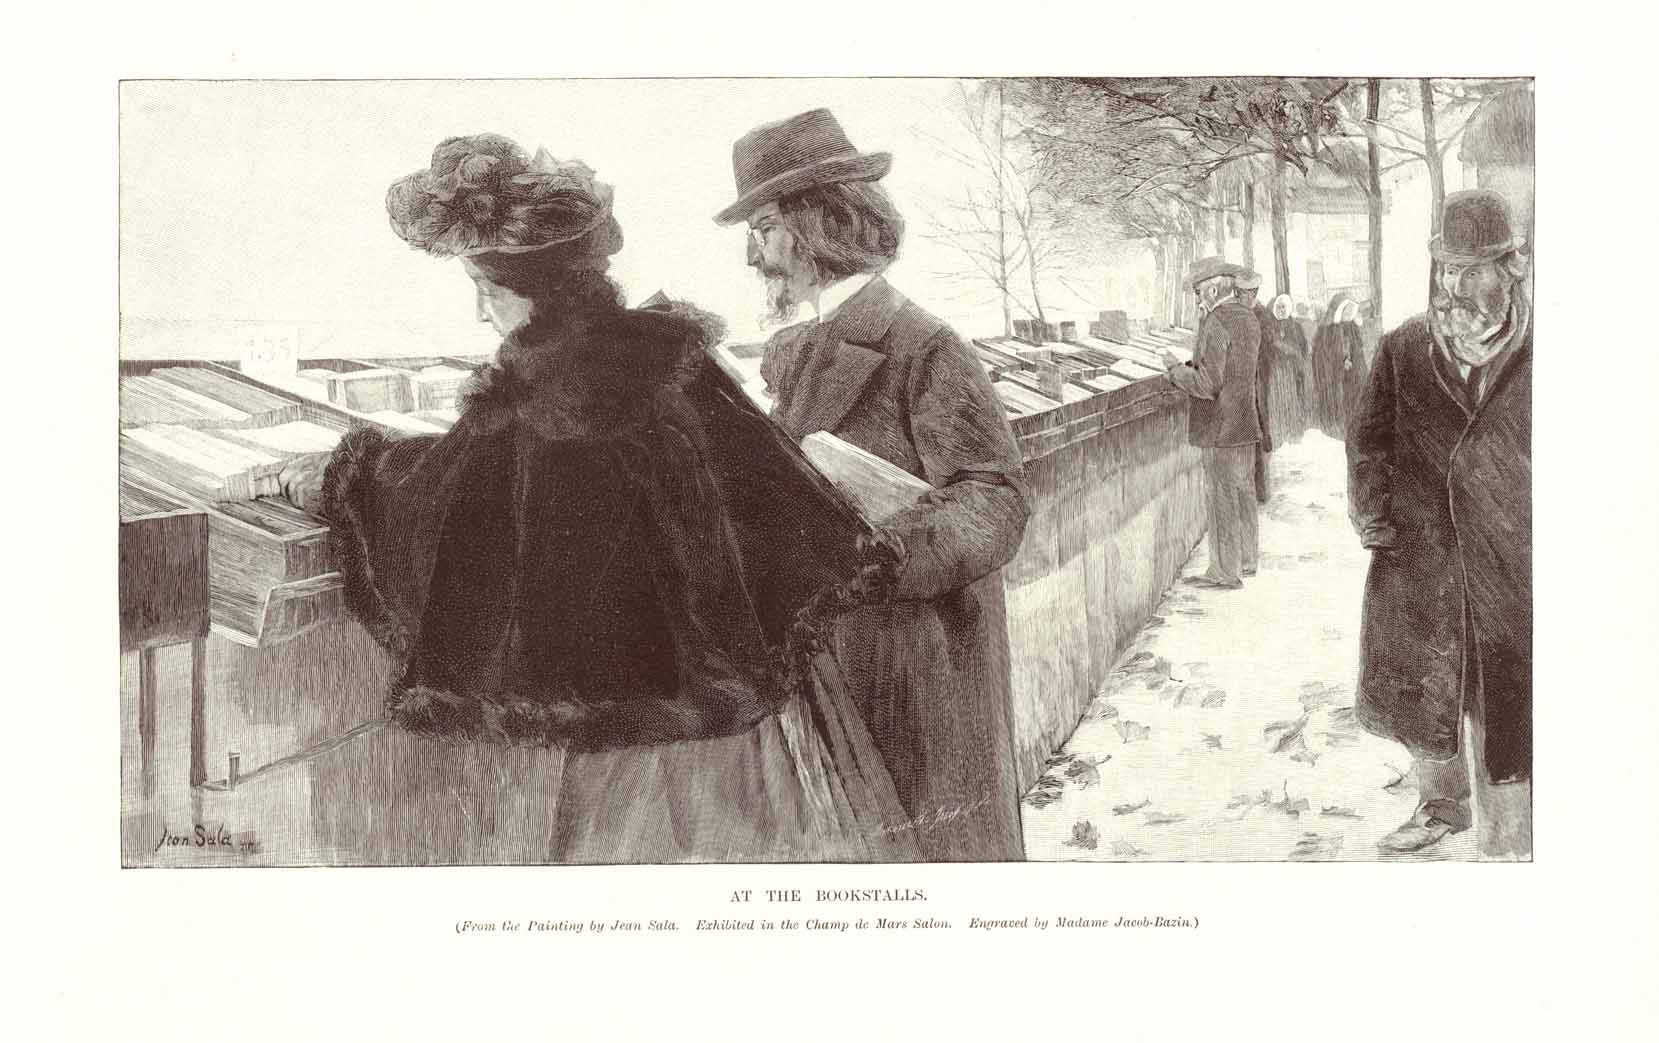 """At the Bookstalls""  Wood engraving by Madame Jacob-Bazin after a painting by Jean Sala Madame Jacob-Bazin ca. 1910."